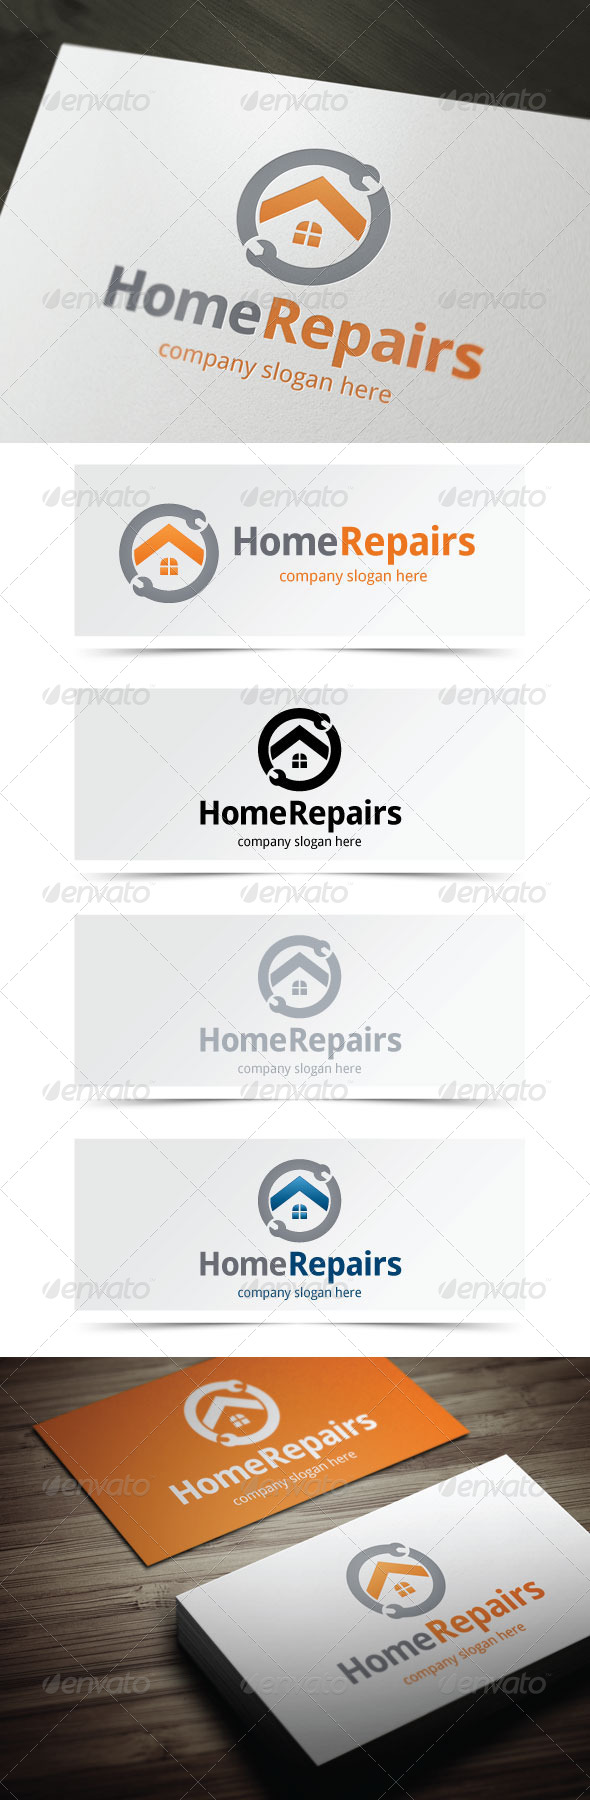 GraphicRiver Home Repairs 5080841